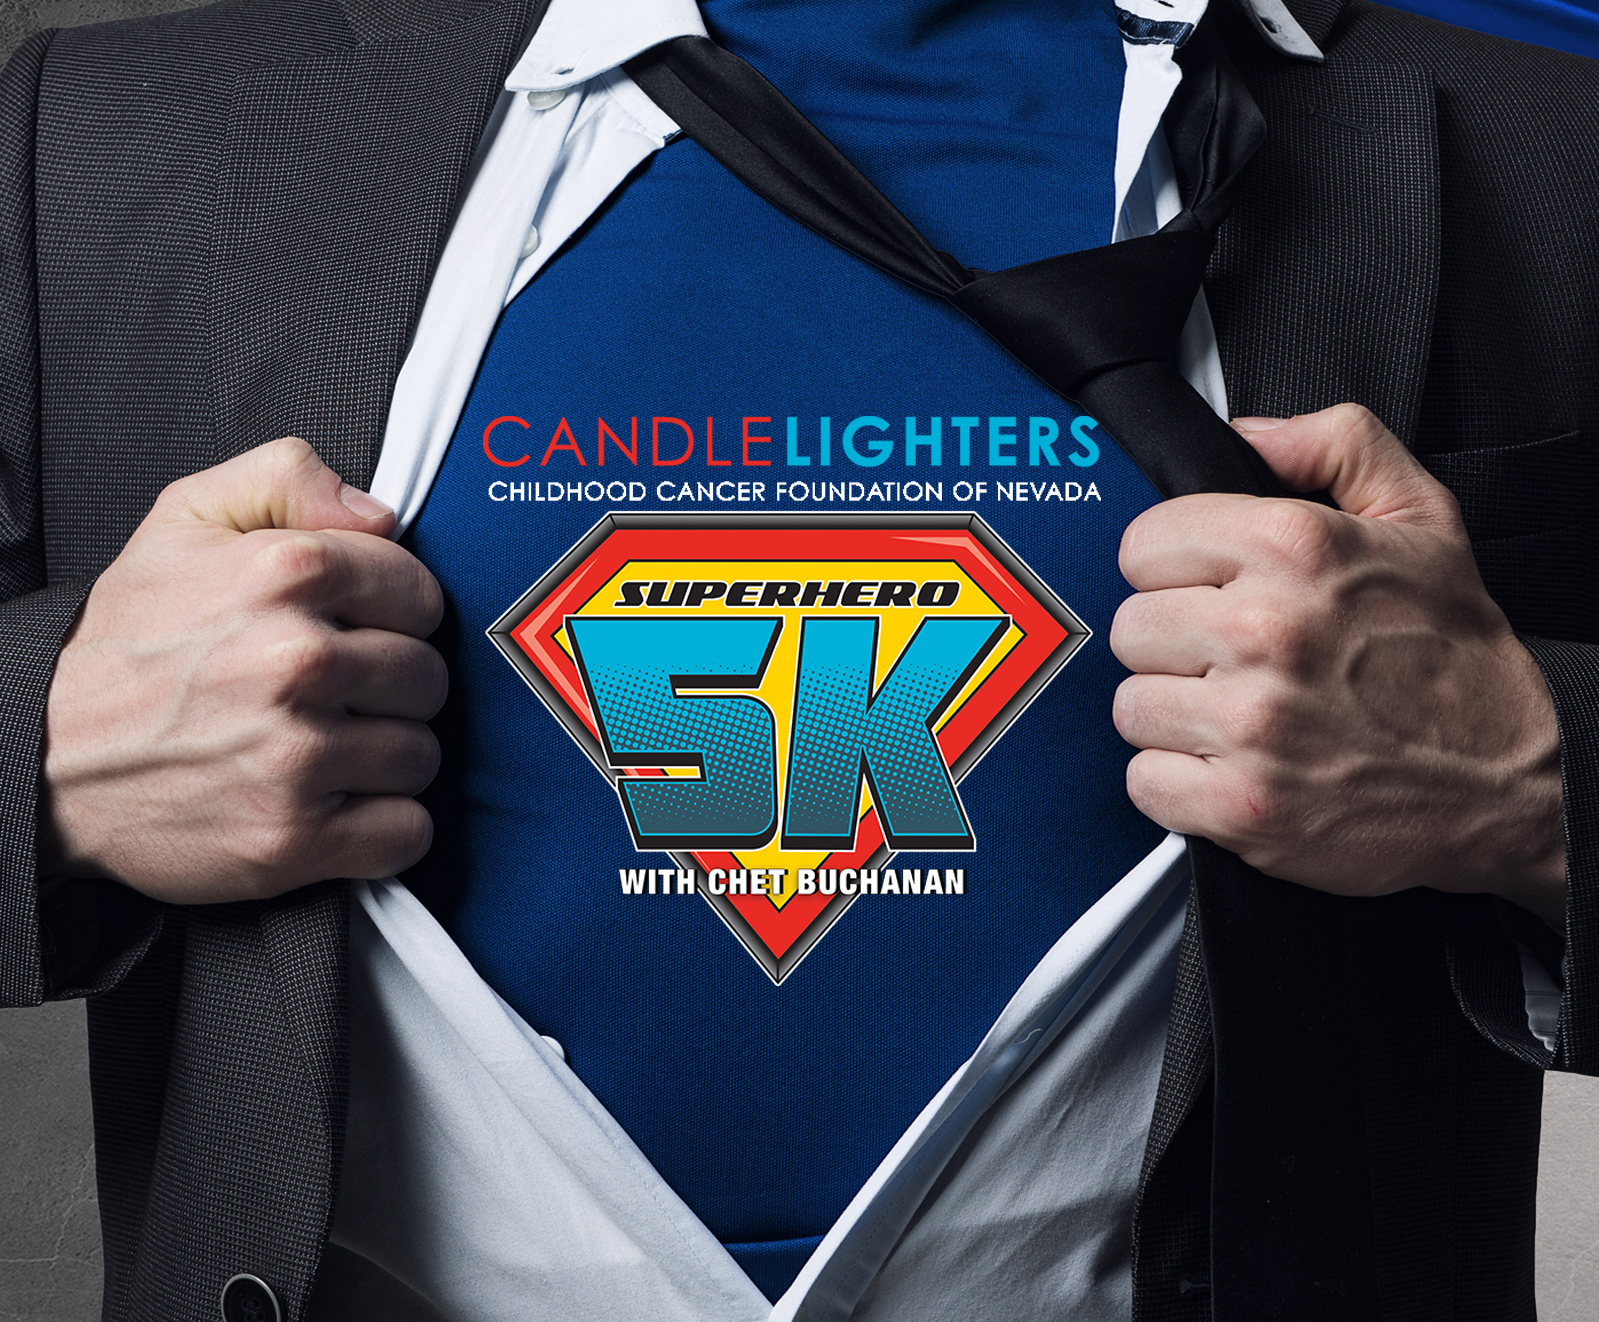 Fox 5: Candlelighters Superhero 5K With Chet Buchanan Critical Mention